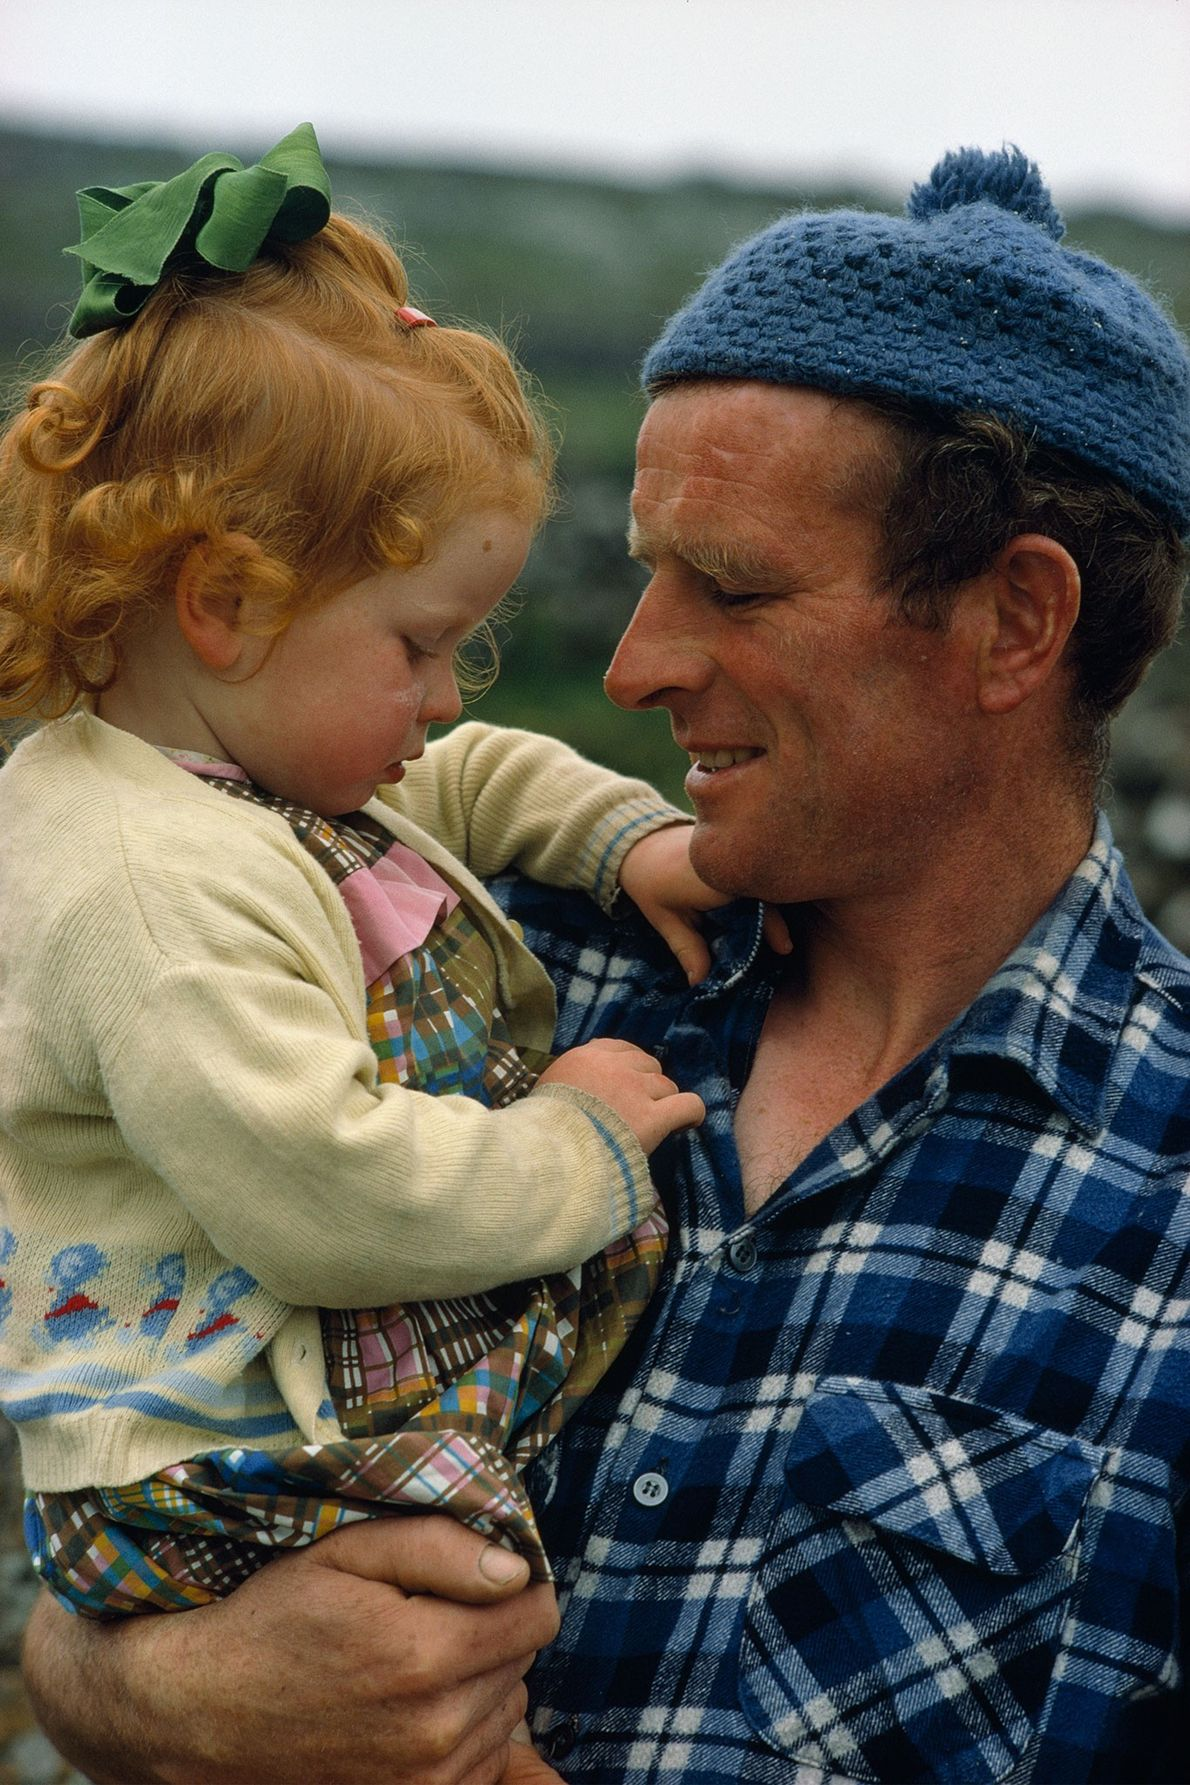 A fisherman cradles his daughter on Inishmaan Island, one of Ireland's Aran Islands, in the 1970s.